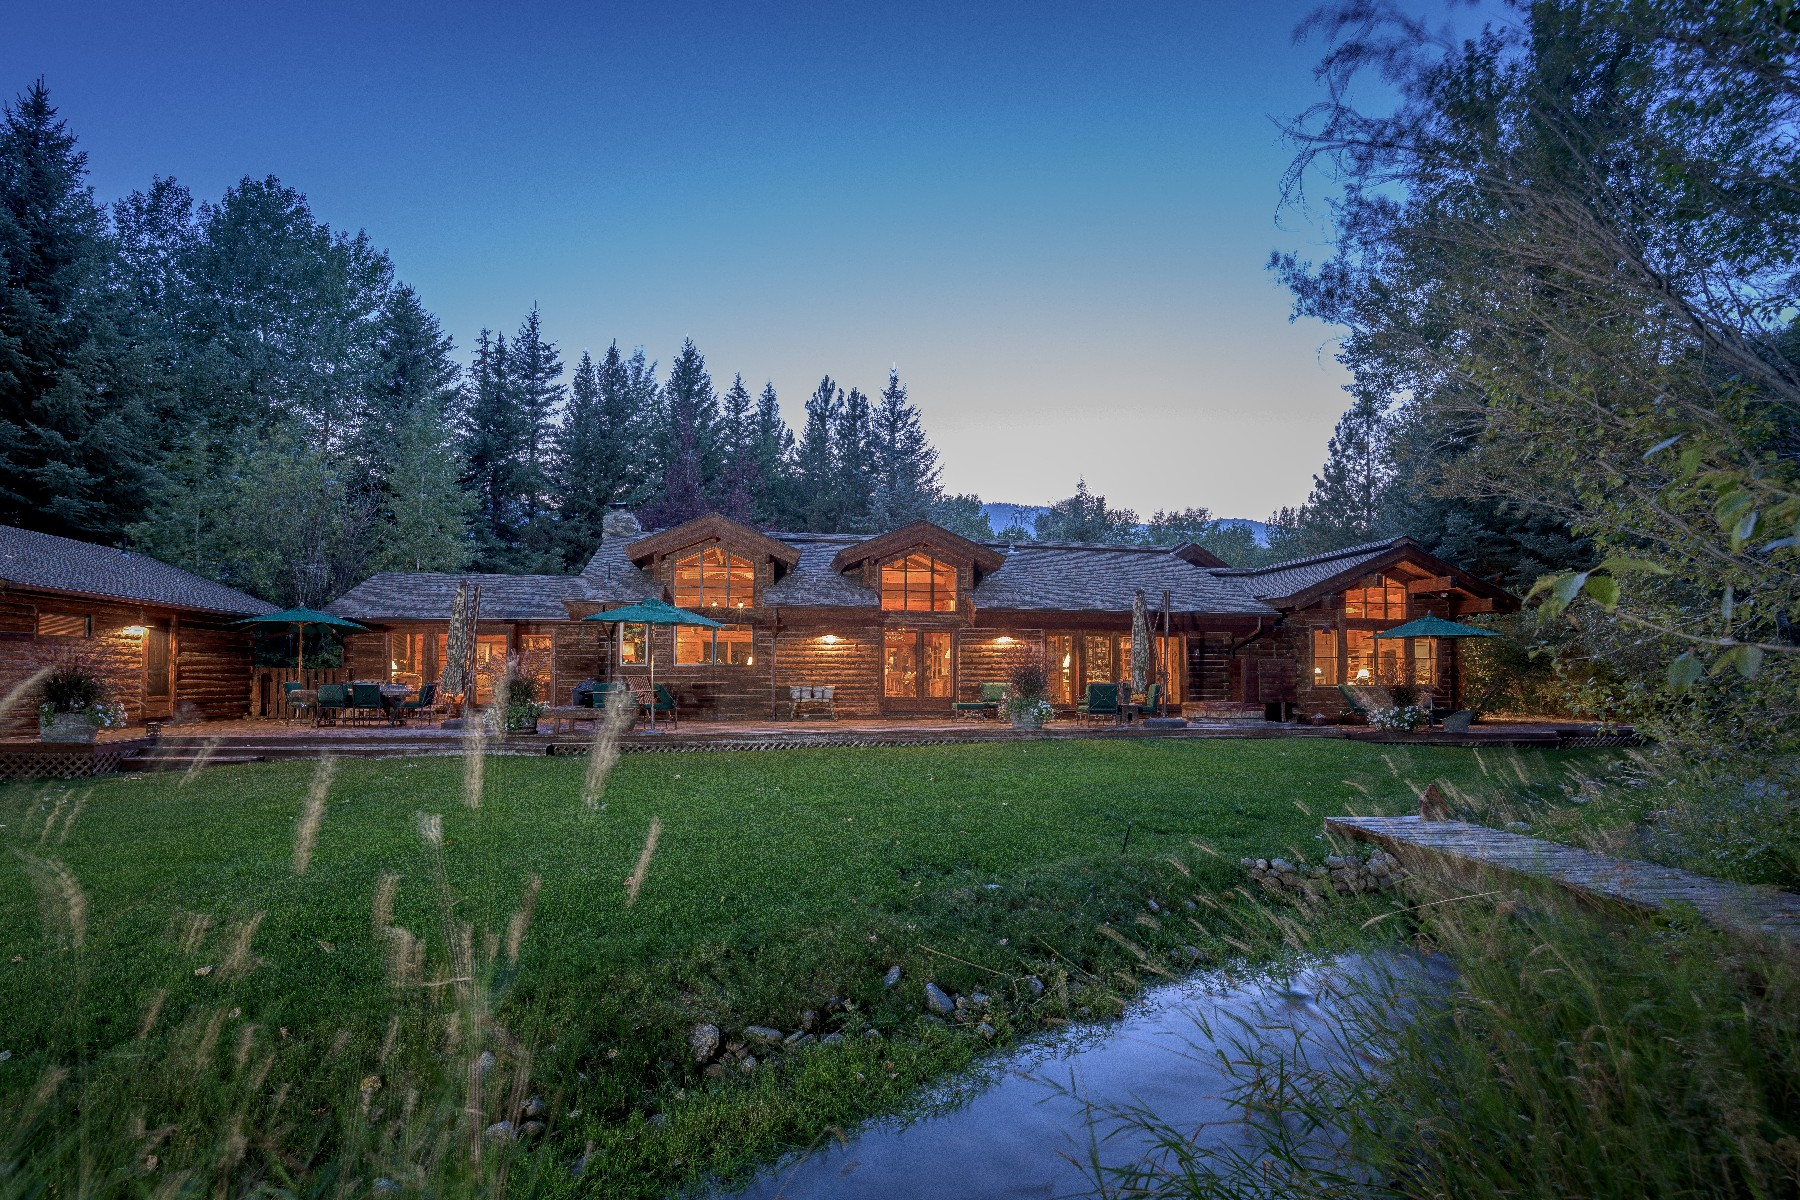 Casa Unifamiliar por un Venta en Captivating Gimlet Compound 102 Deer Run Rd, Ketchum, Idaho, 83340 Estados Unidos